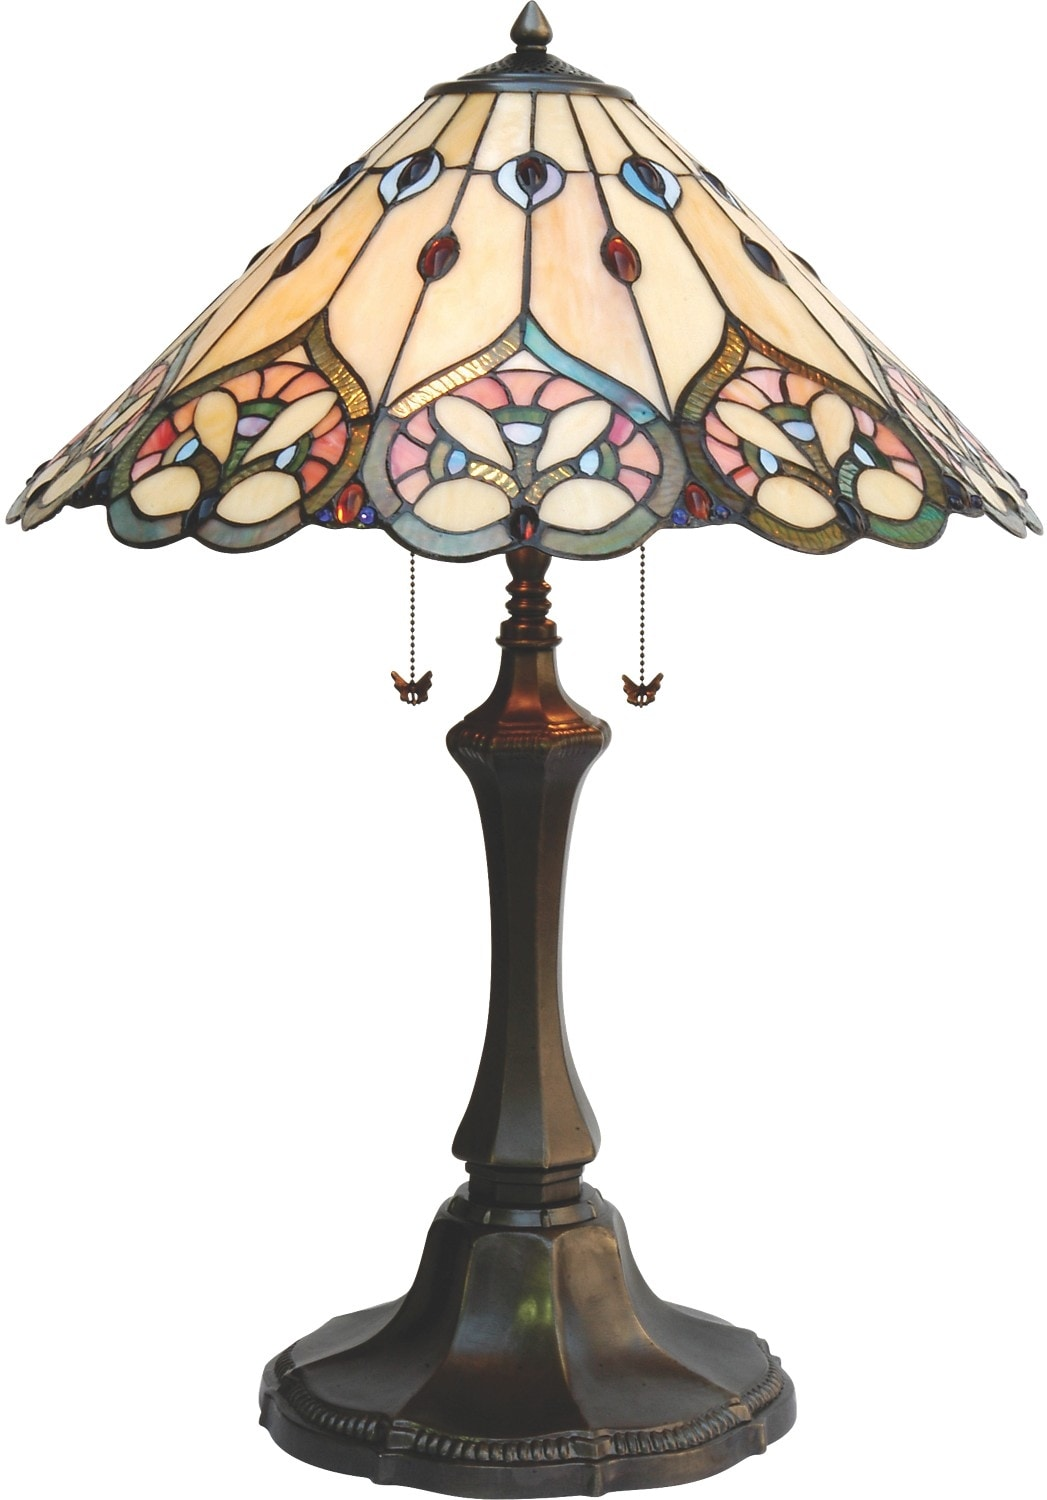 accessories cairo tiffany style table lamp with stained glass shade. Black Bedroom Furniture Sets. Home Design Ideas